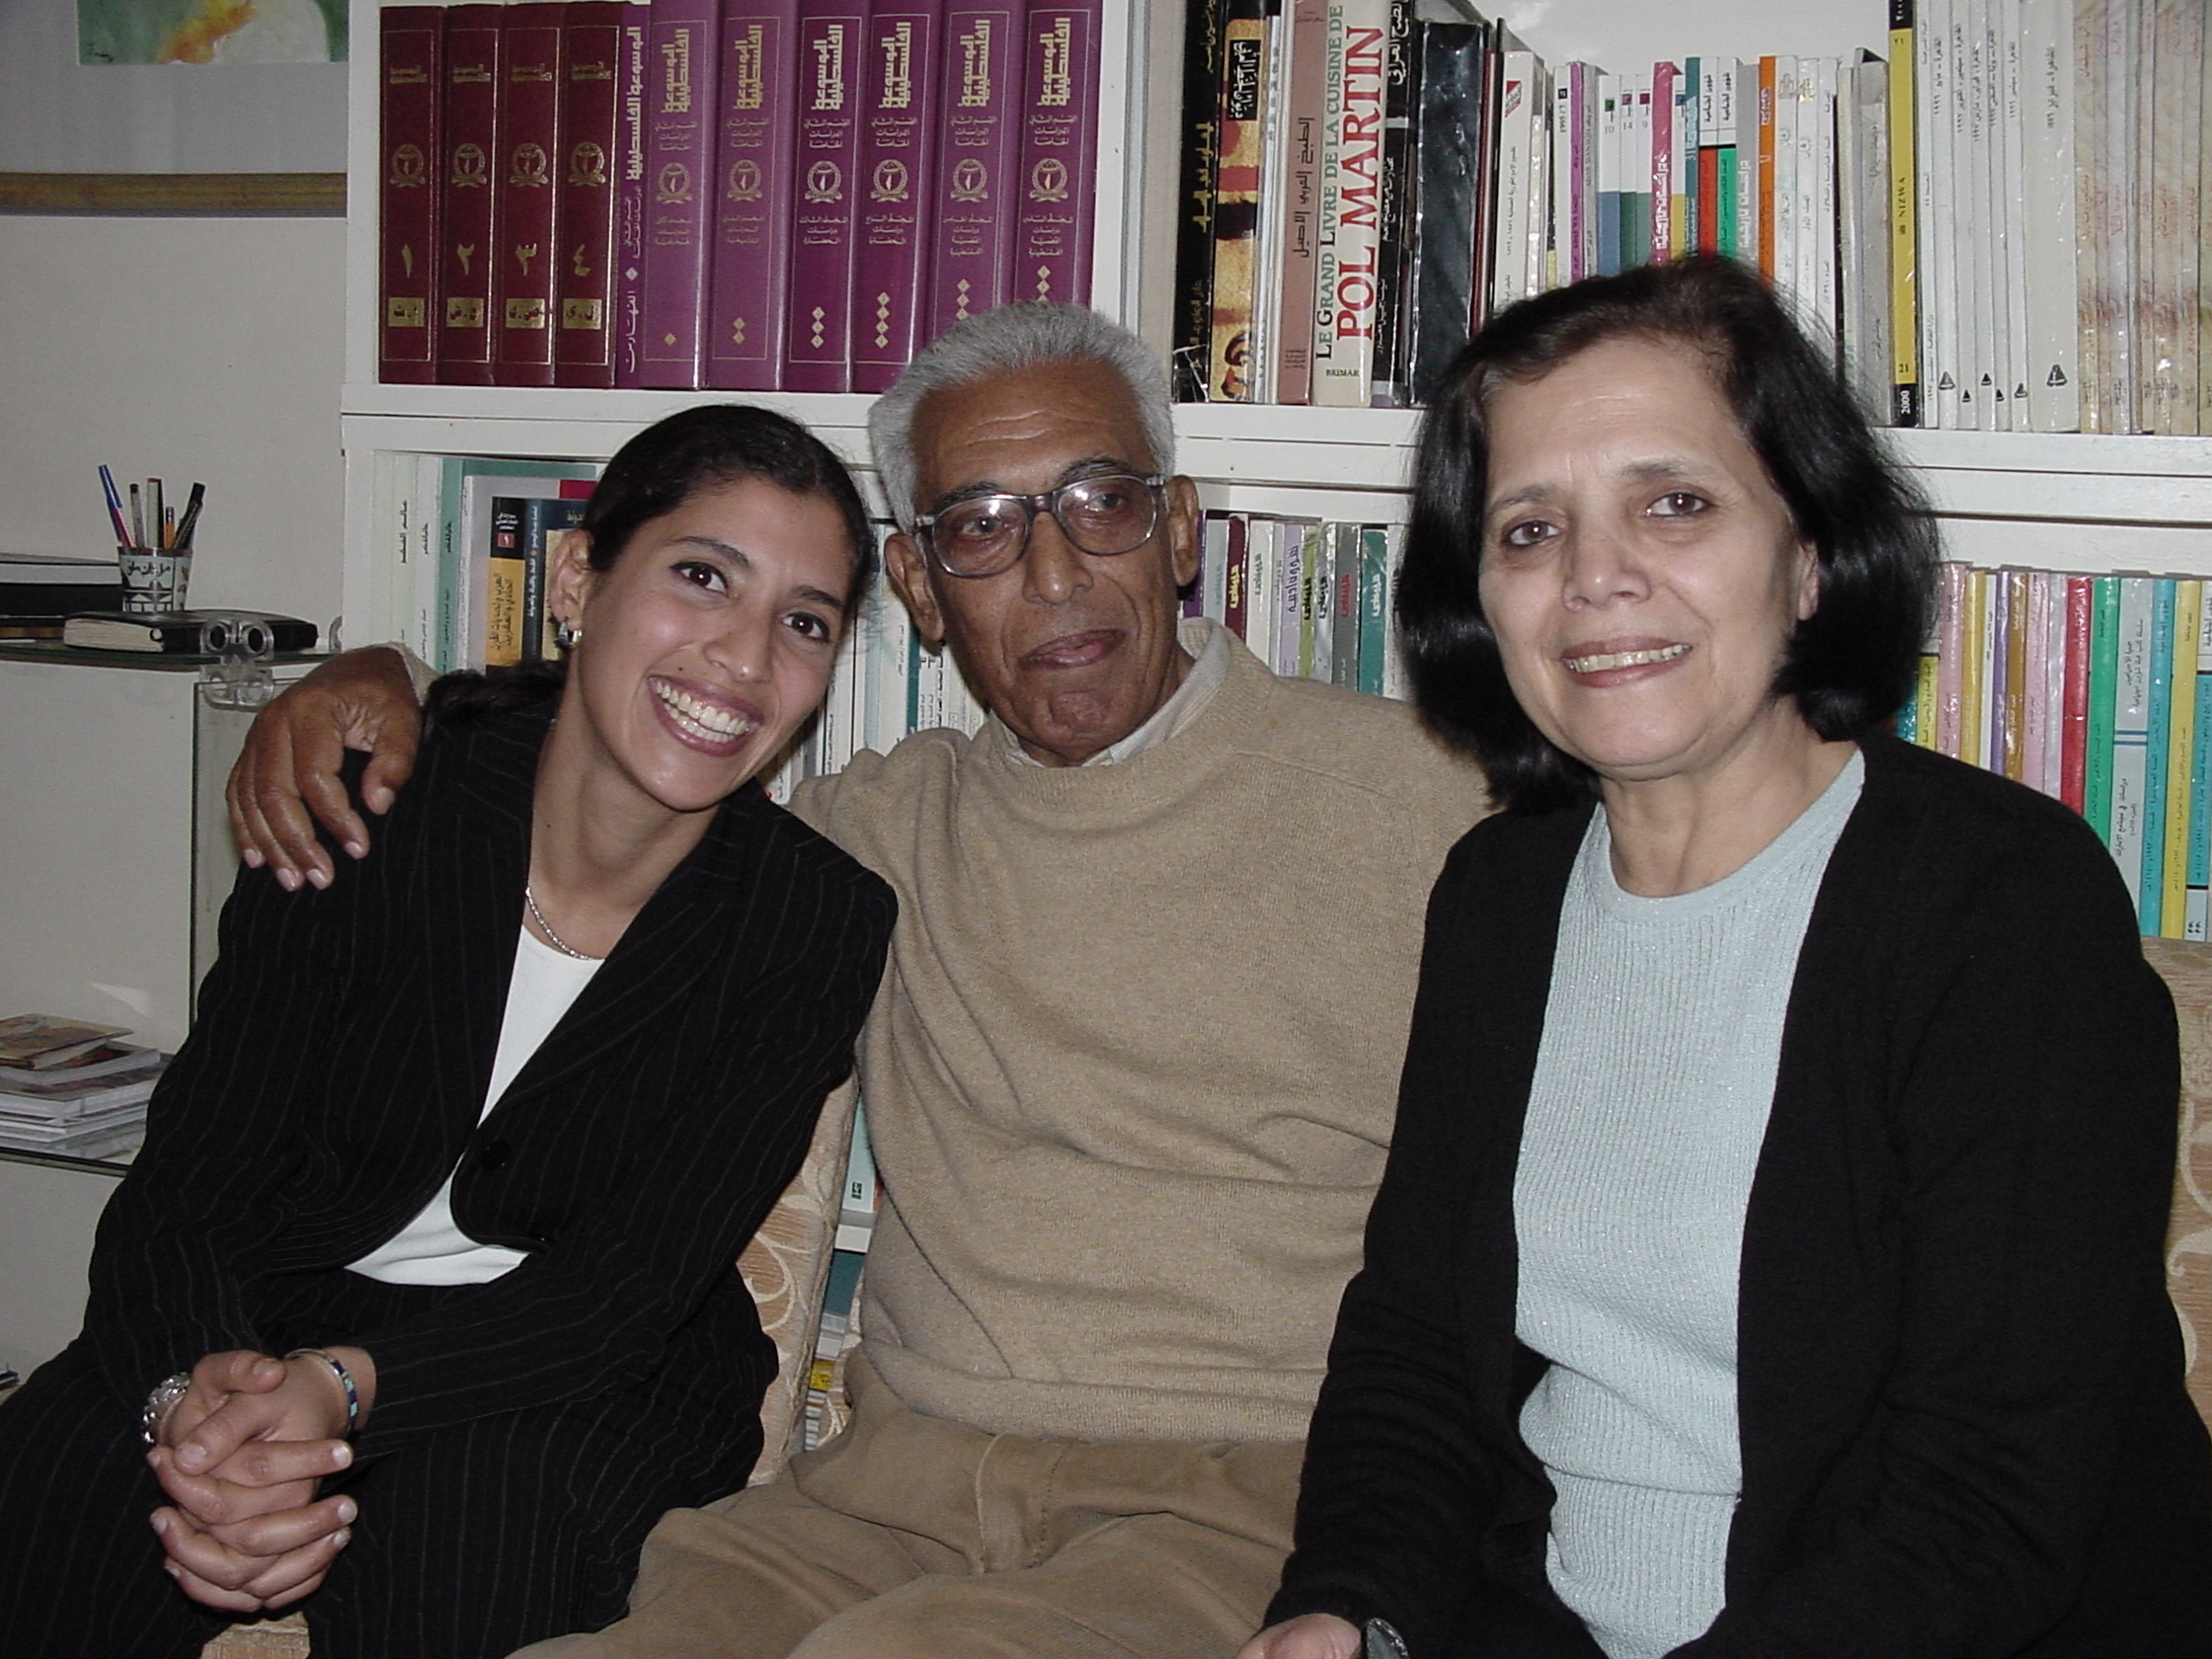 Laila, her father Abdul Rahman Munif and her mother Souad.